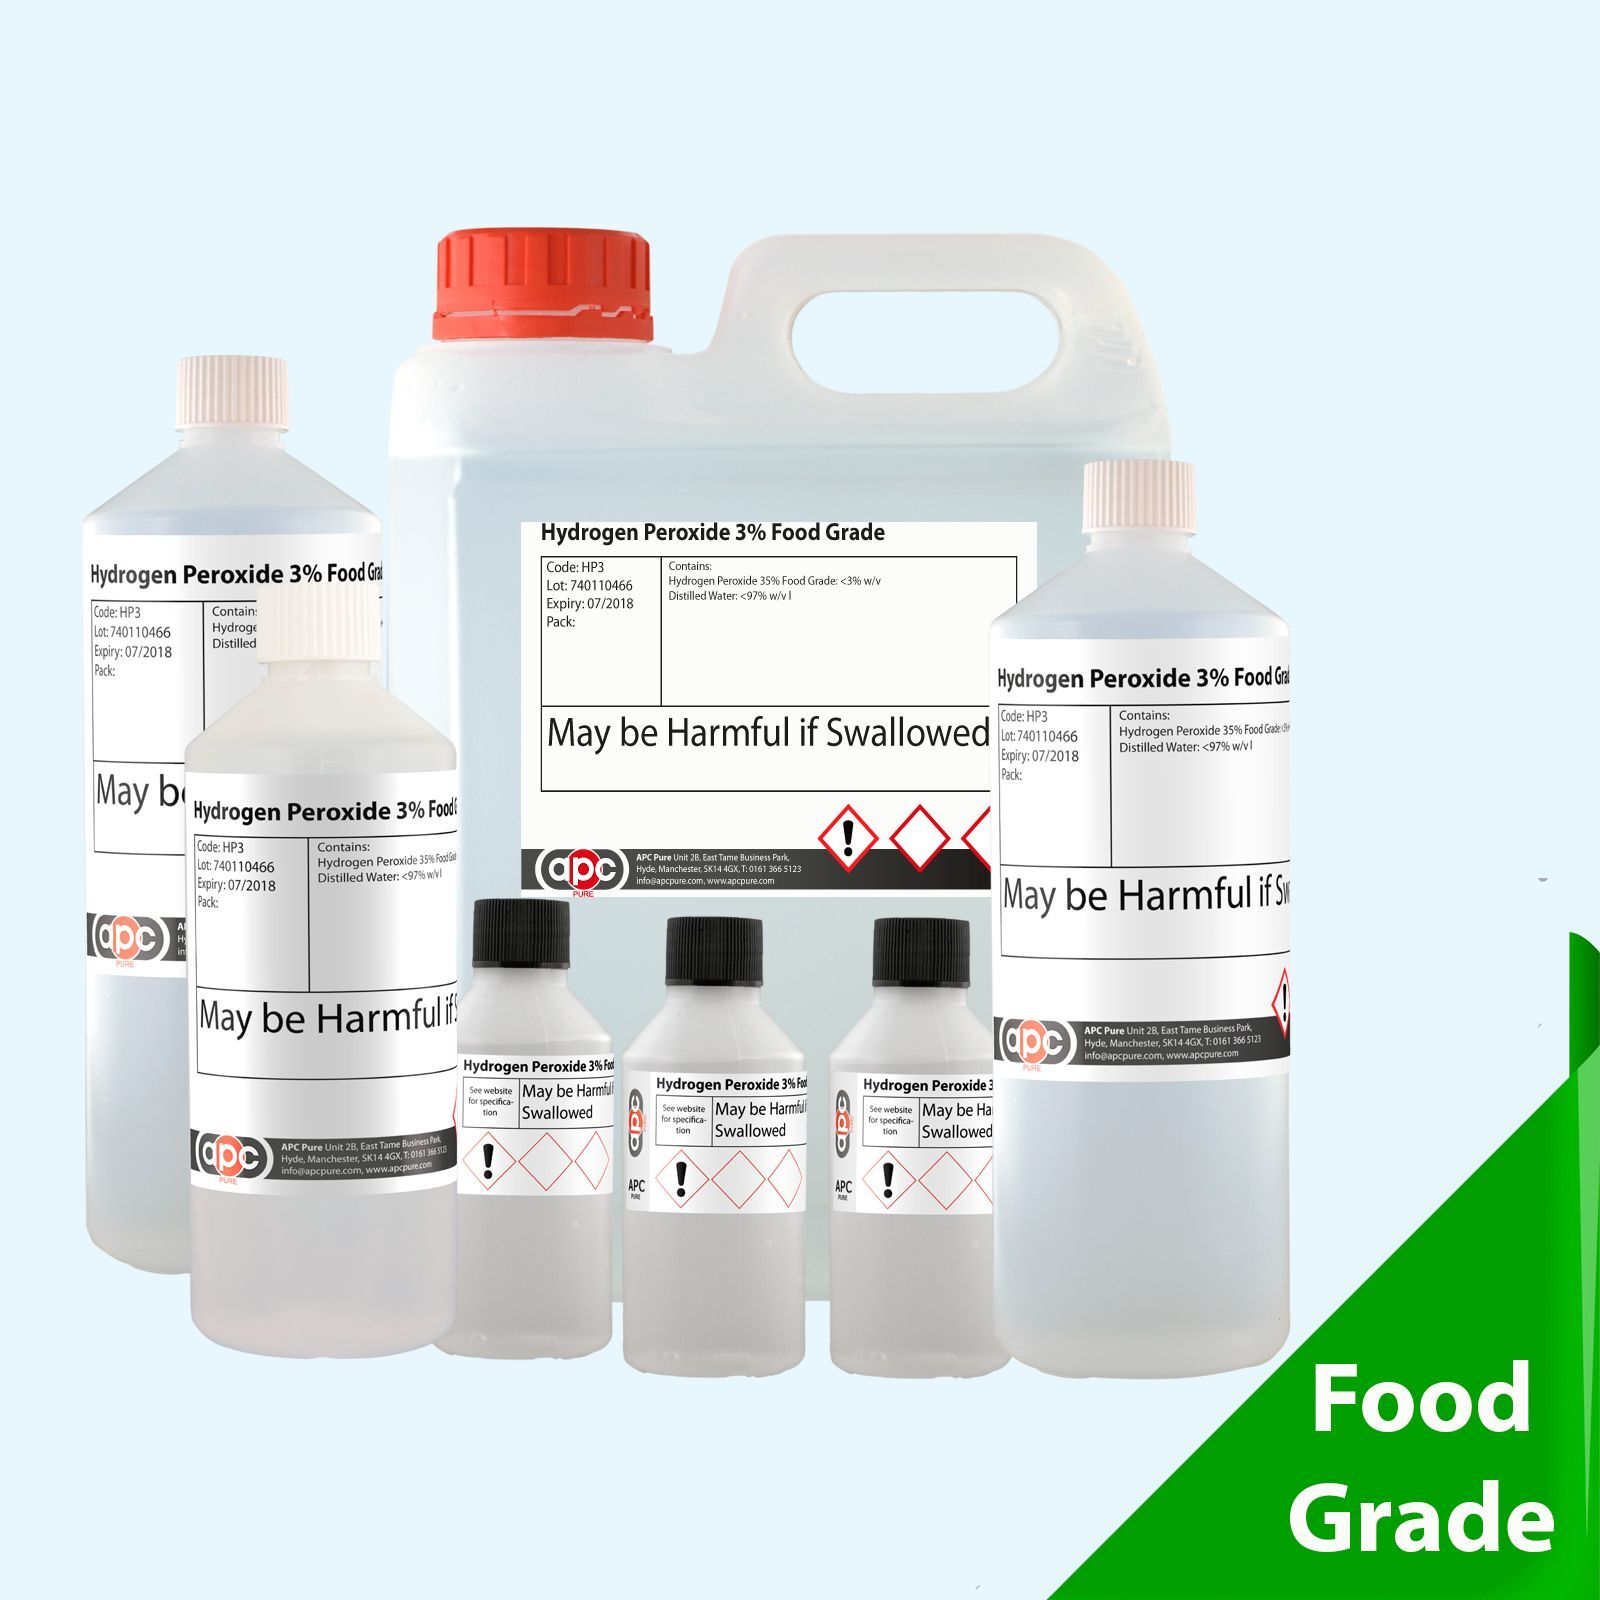 hydrogen peroxide 3 essay Shipment of hydrogen peroxide samples introduction often a need arises which requires the shipment of laboratory quantities of hydrogen peroxide for testing off-site.